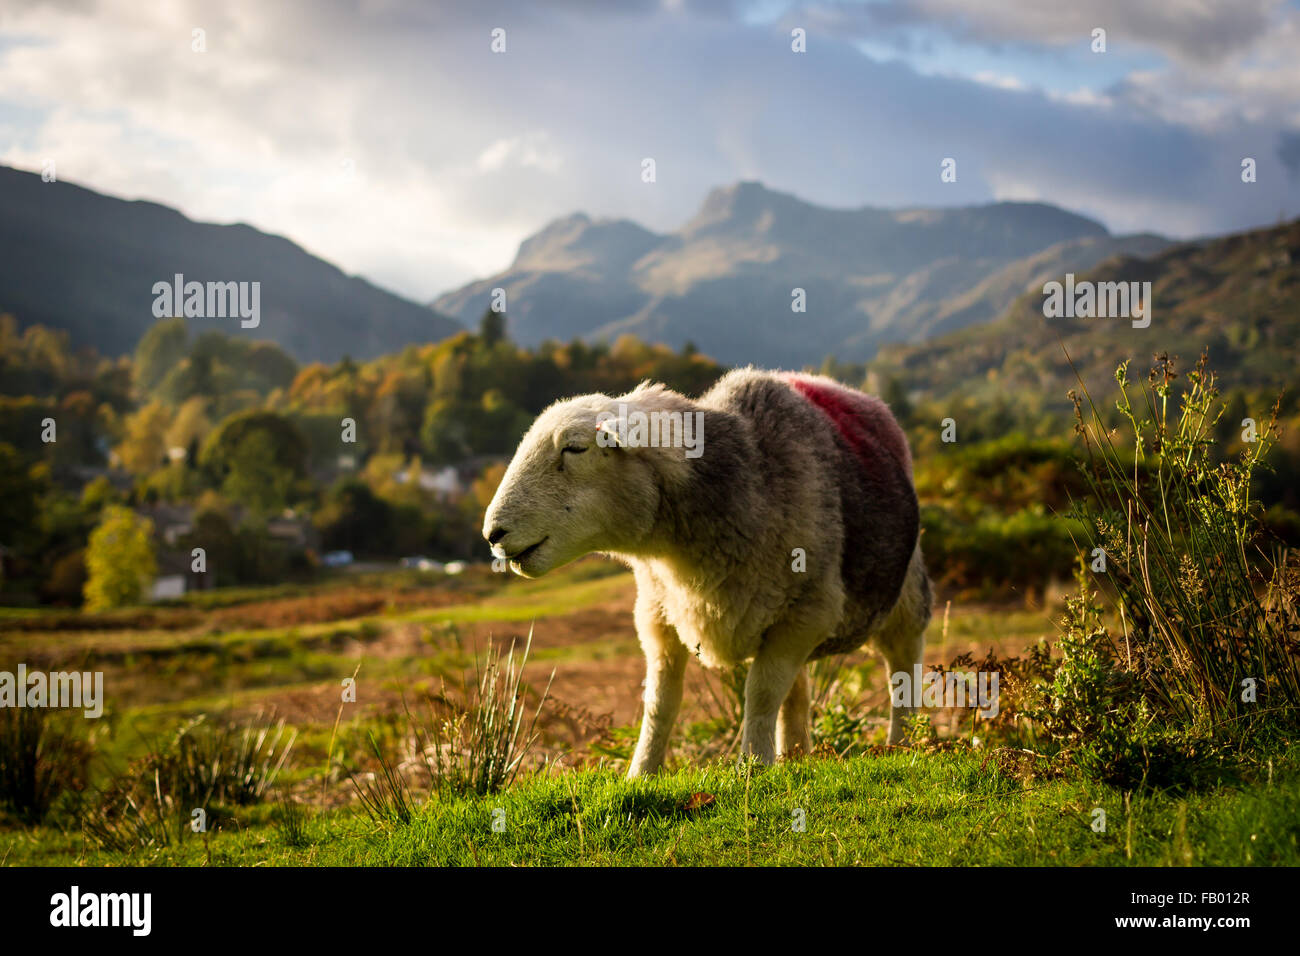 A Herdwick Sheep against the backdrop of the Langdales, Lake District - Stock Image